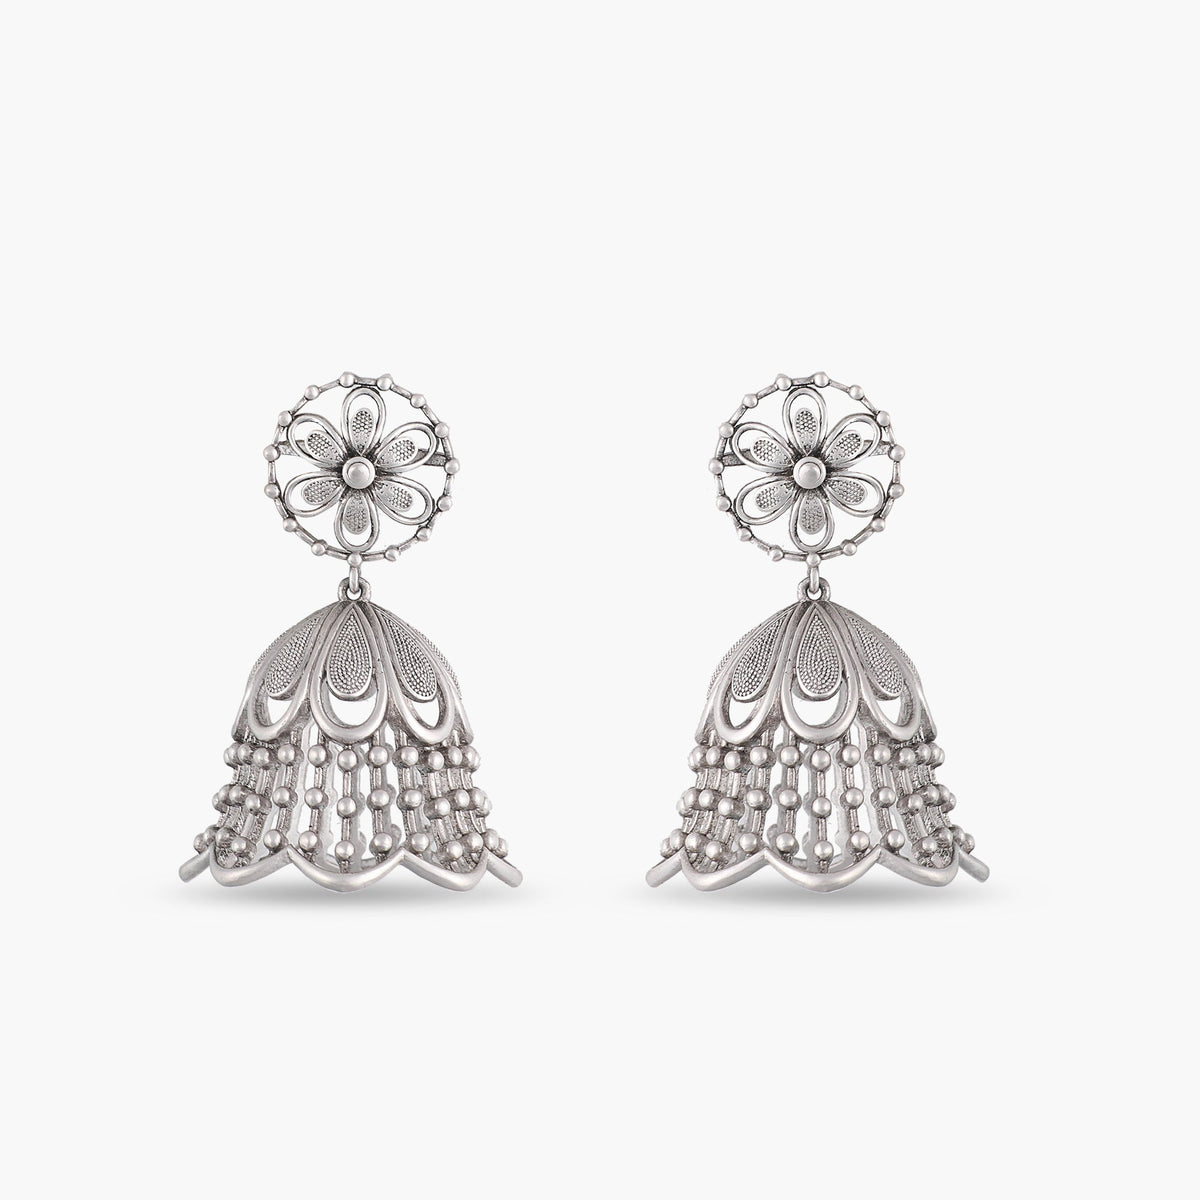 Ketki Antique Silver Jhumka Earrings